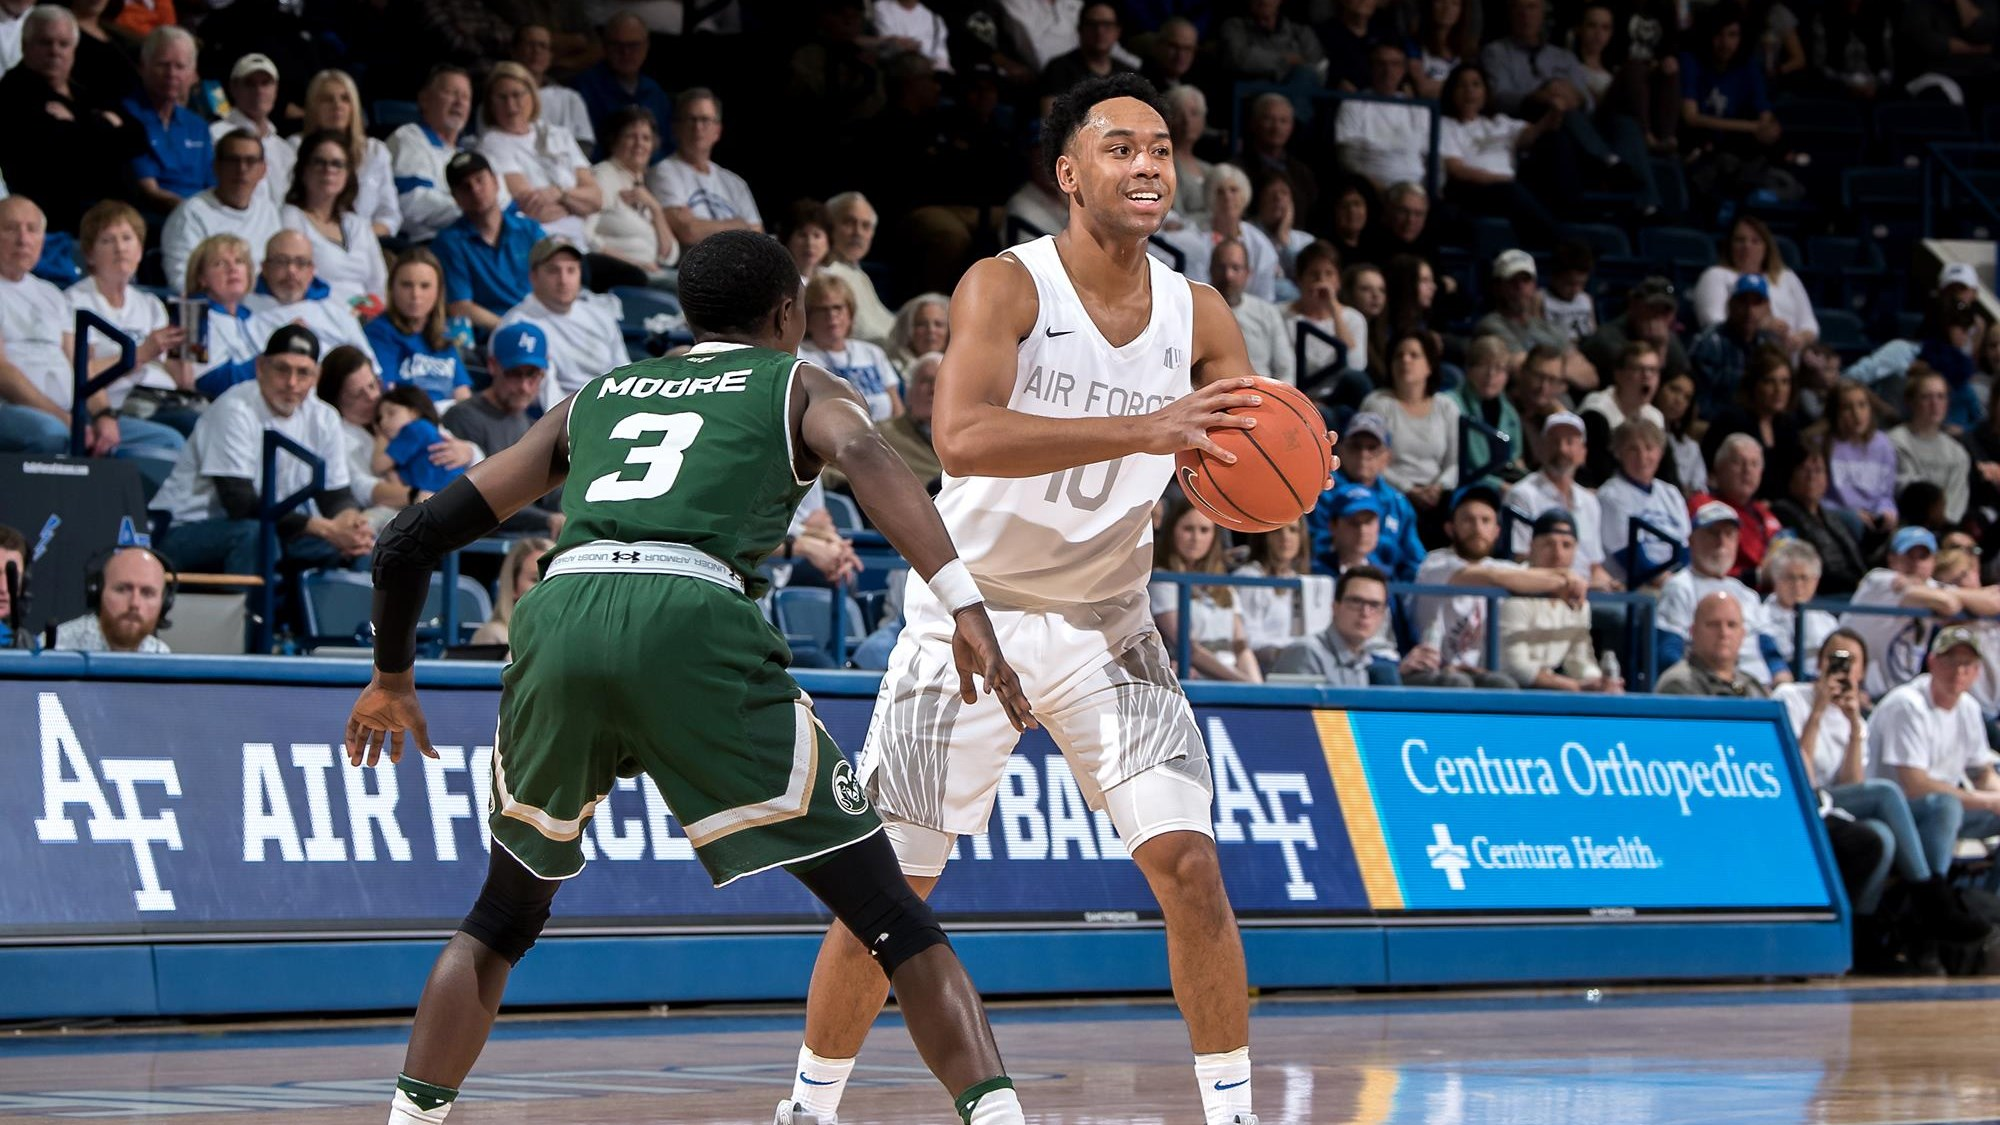 2a787f9bc443 Air Force MBB Travels to UNLV - Air Force Academy Athletics